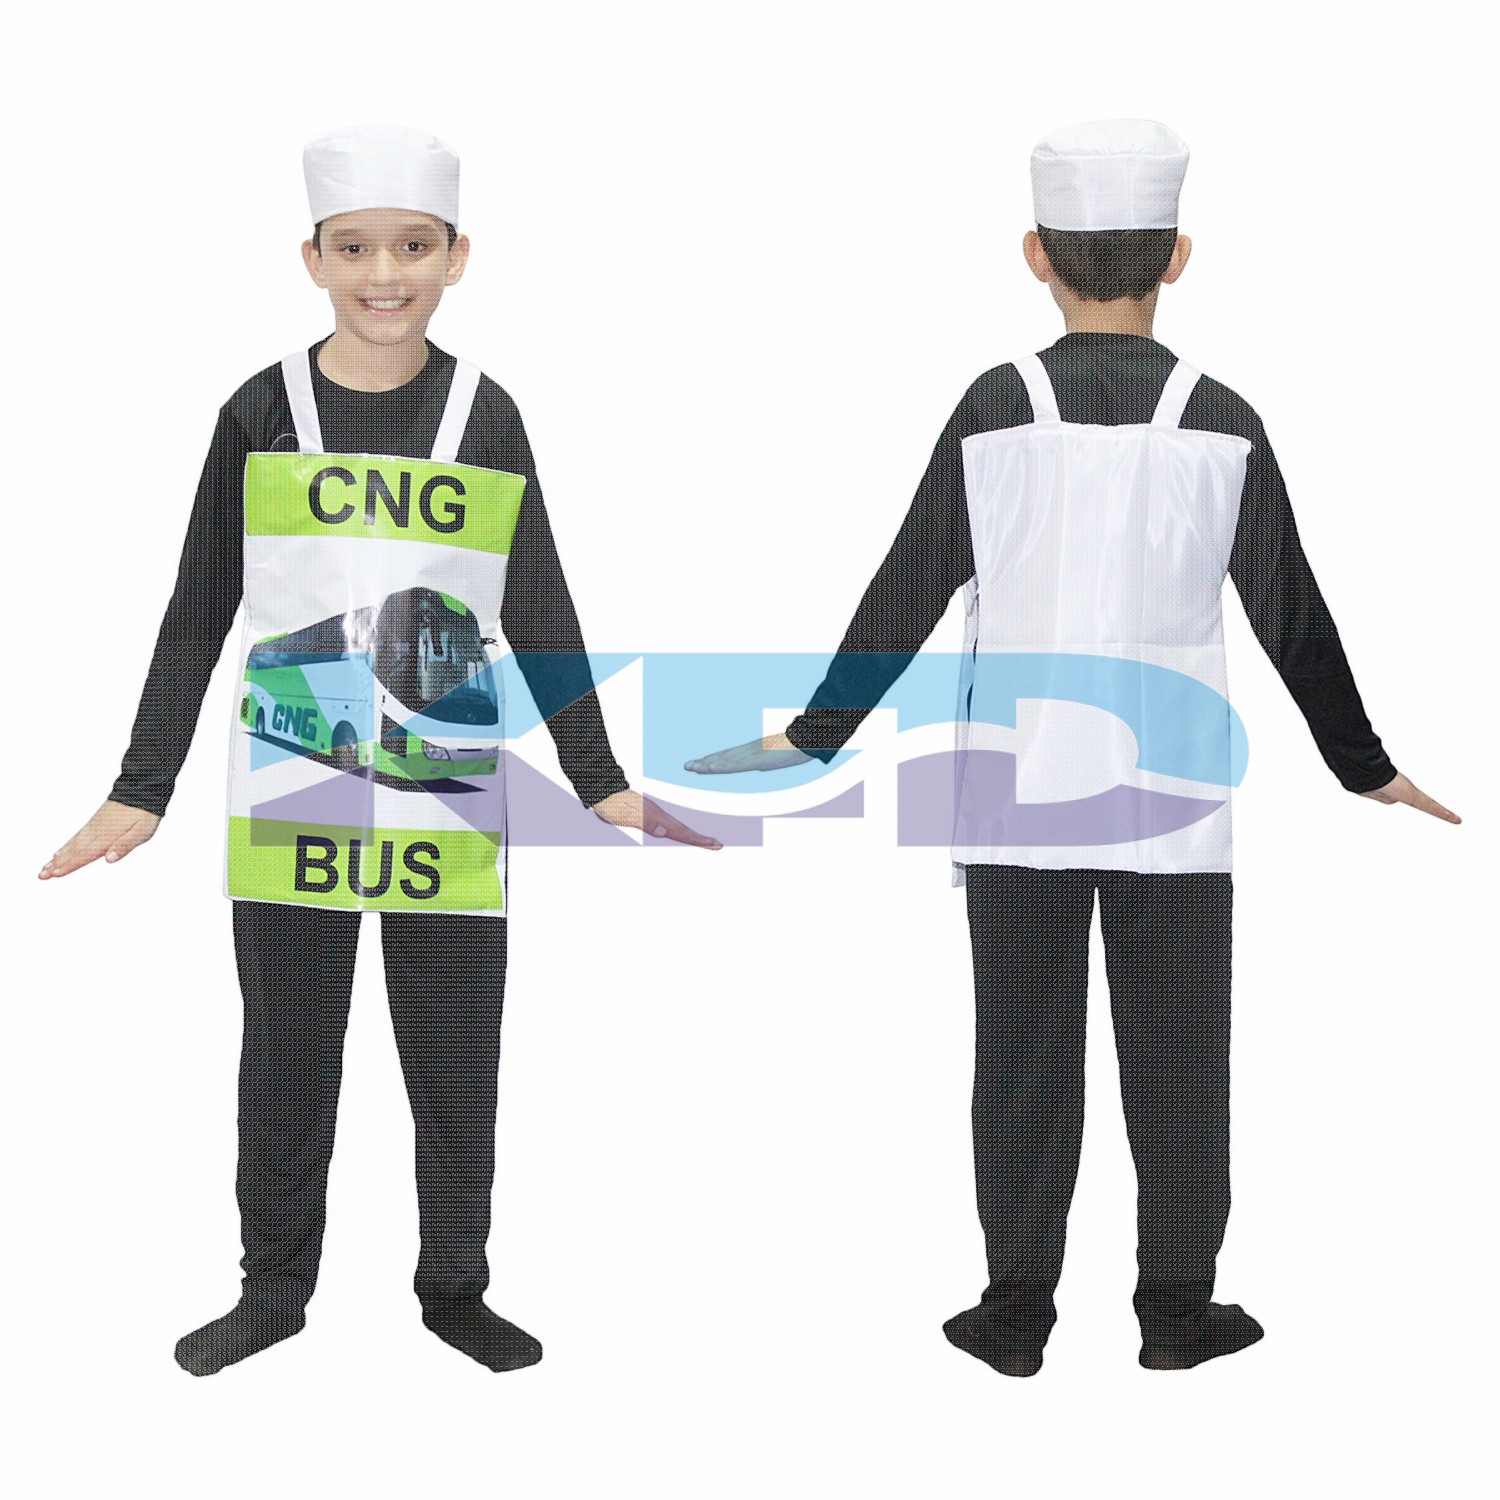 CNG Bus Vehicle Fancy Dress/Public Travel Bus Costume For Kids/For Kids Annual function/Theme Party/Competition/Stage Shows/Birthday Party Dress